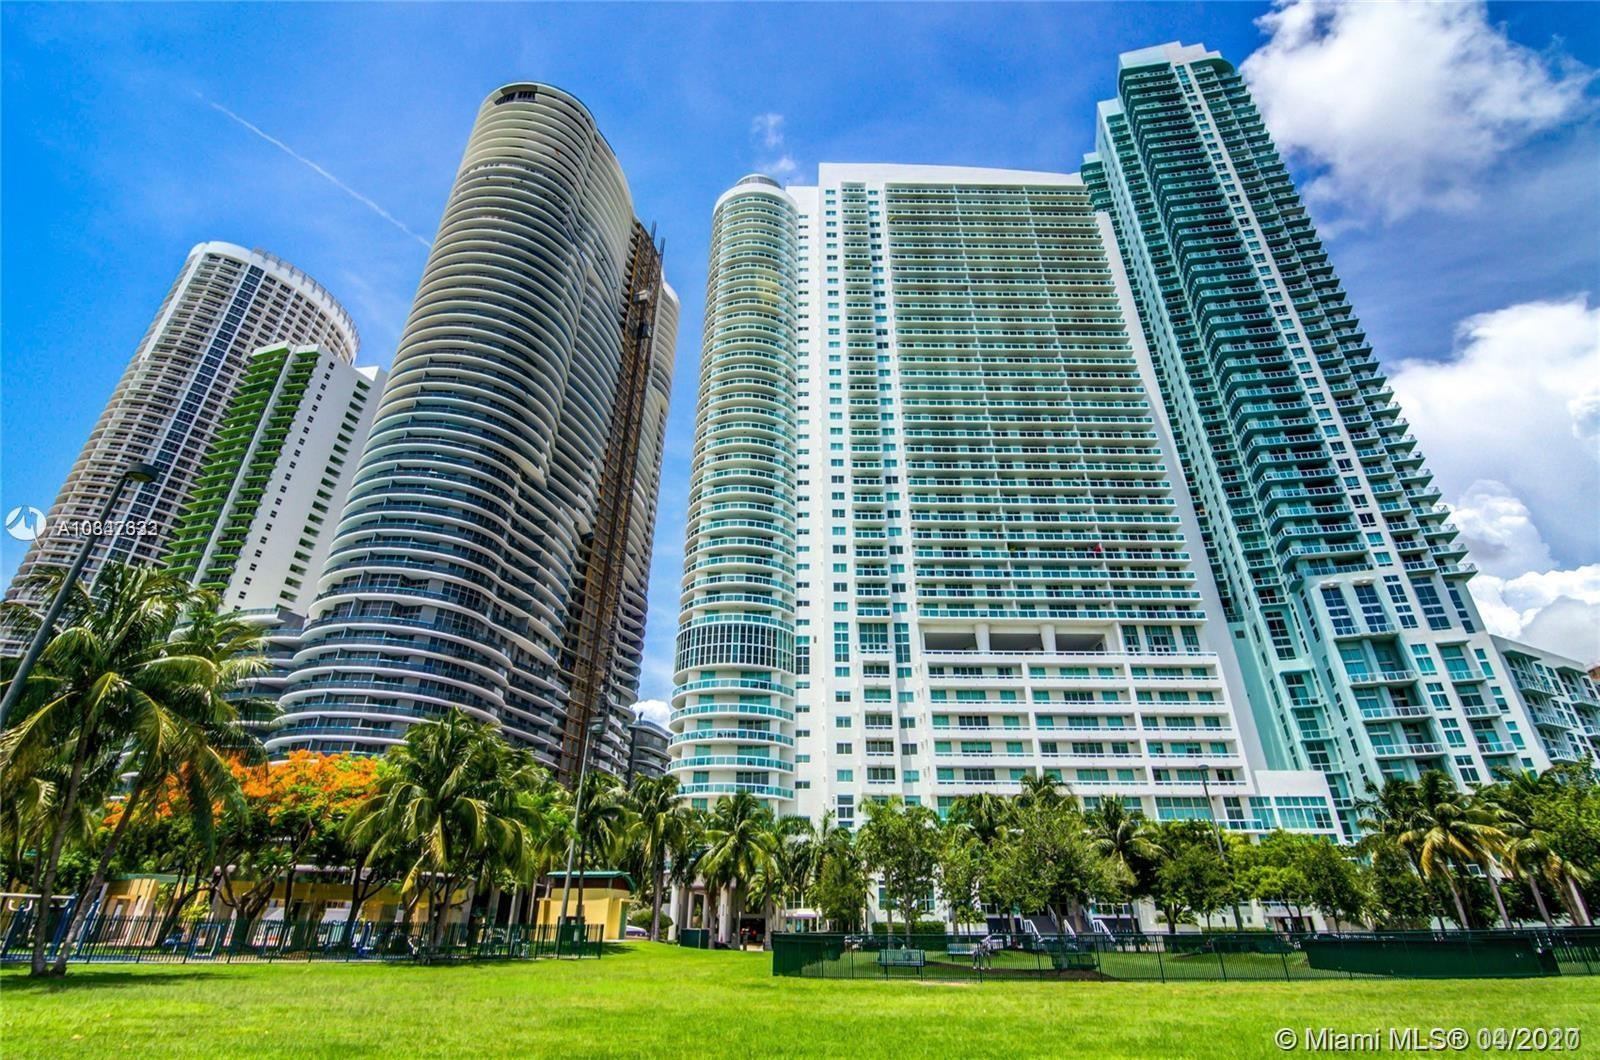 1810 FOOT UNIT FOR SALE LARGEST 2 BEDROOM CORNER WITH TWO SEPERATE BALCONIES. THIS UNIT WAS TOTALLY